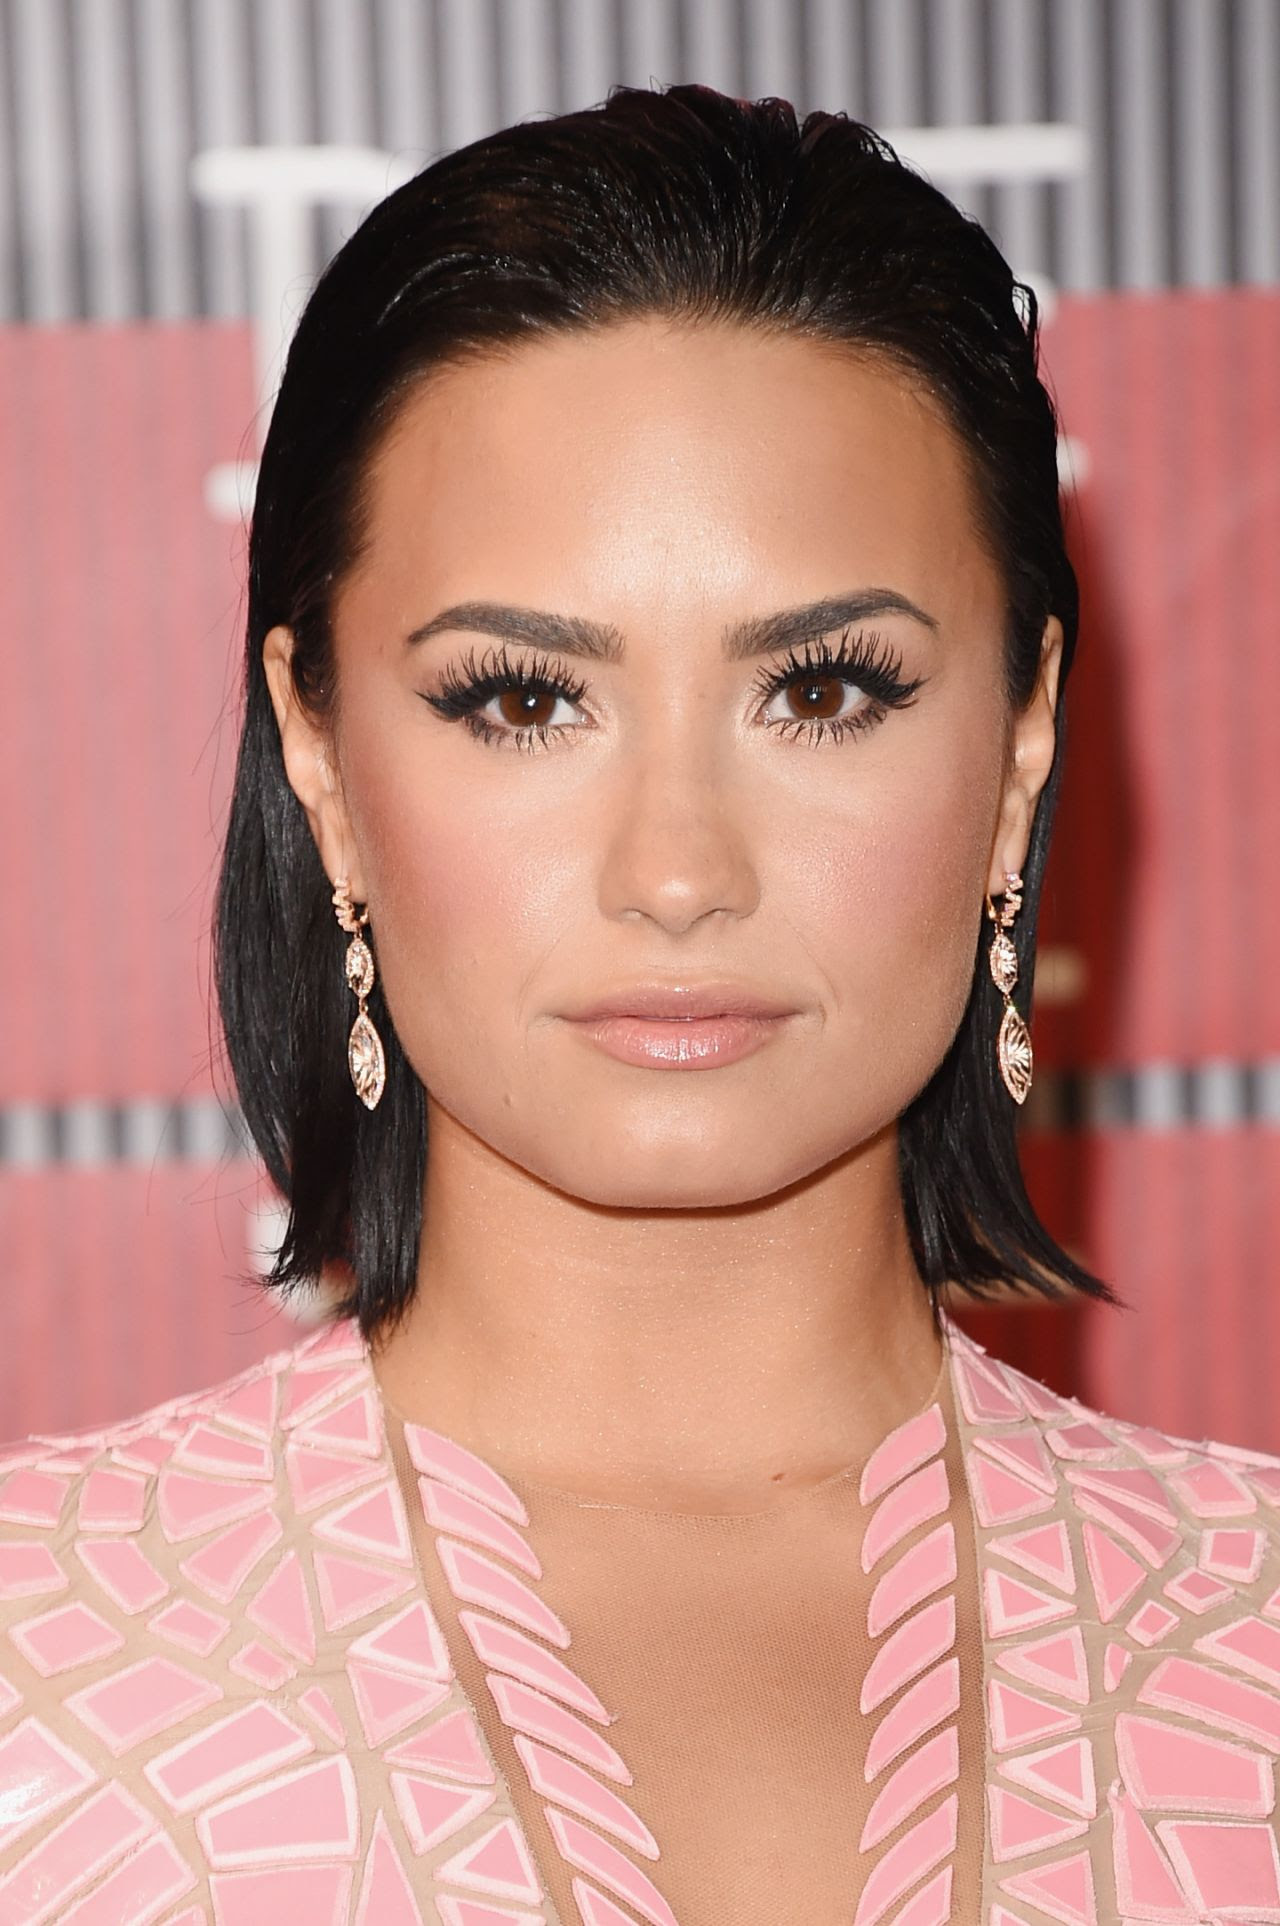 http://celebmafia.com/wp-content/uploads/2015/08/demi-lovato-2015-mtv-video-music-awards-at-microsoft-theater-in-los-angeles_3.jpg